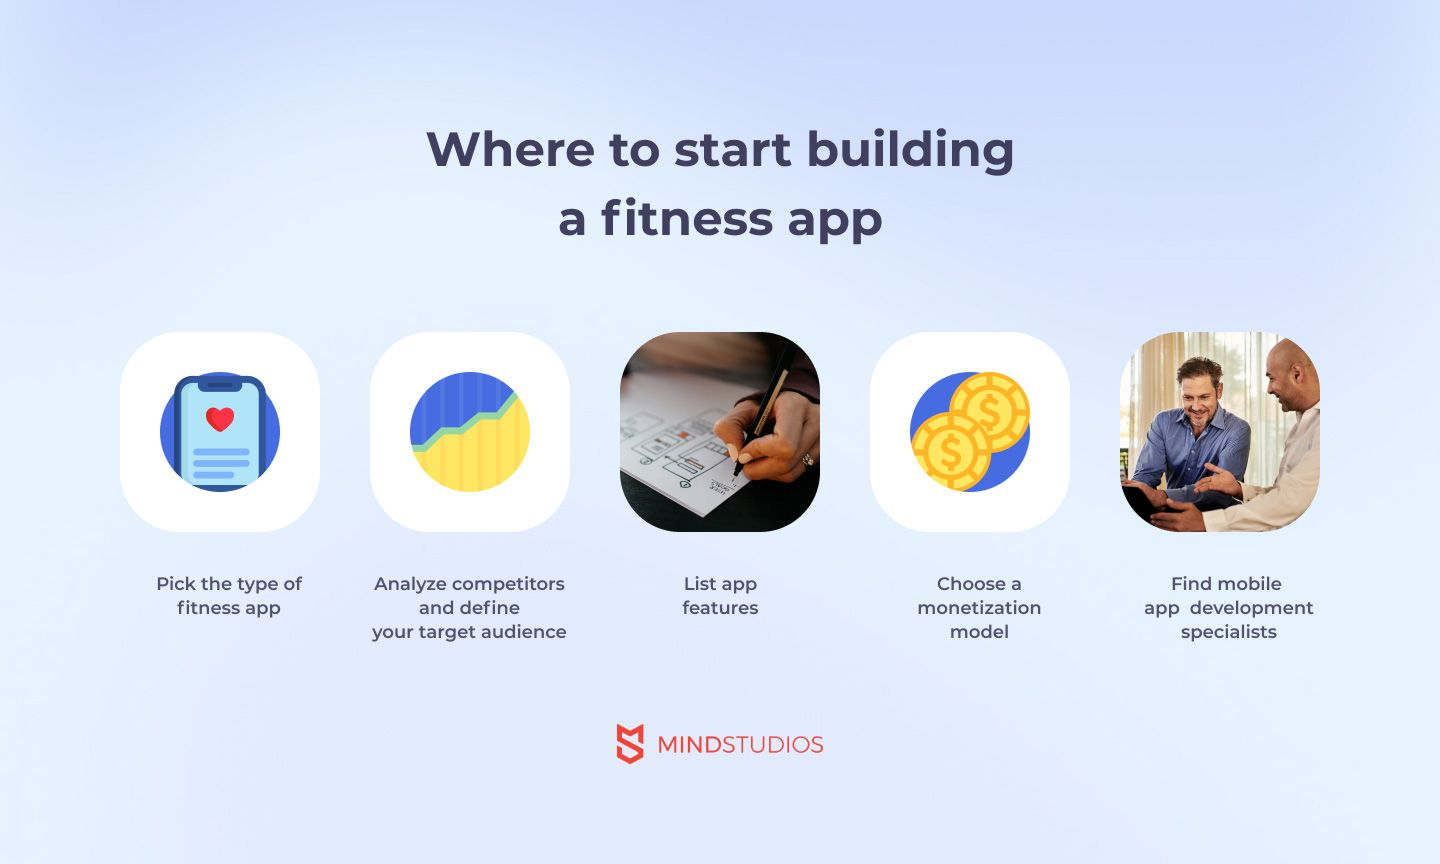 Building a fitness app: start with a plan